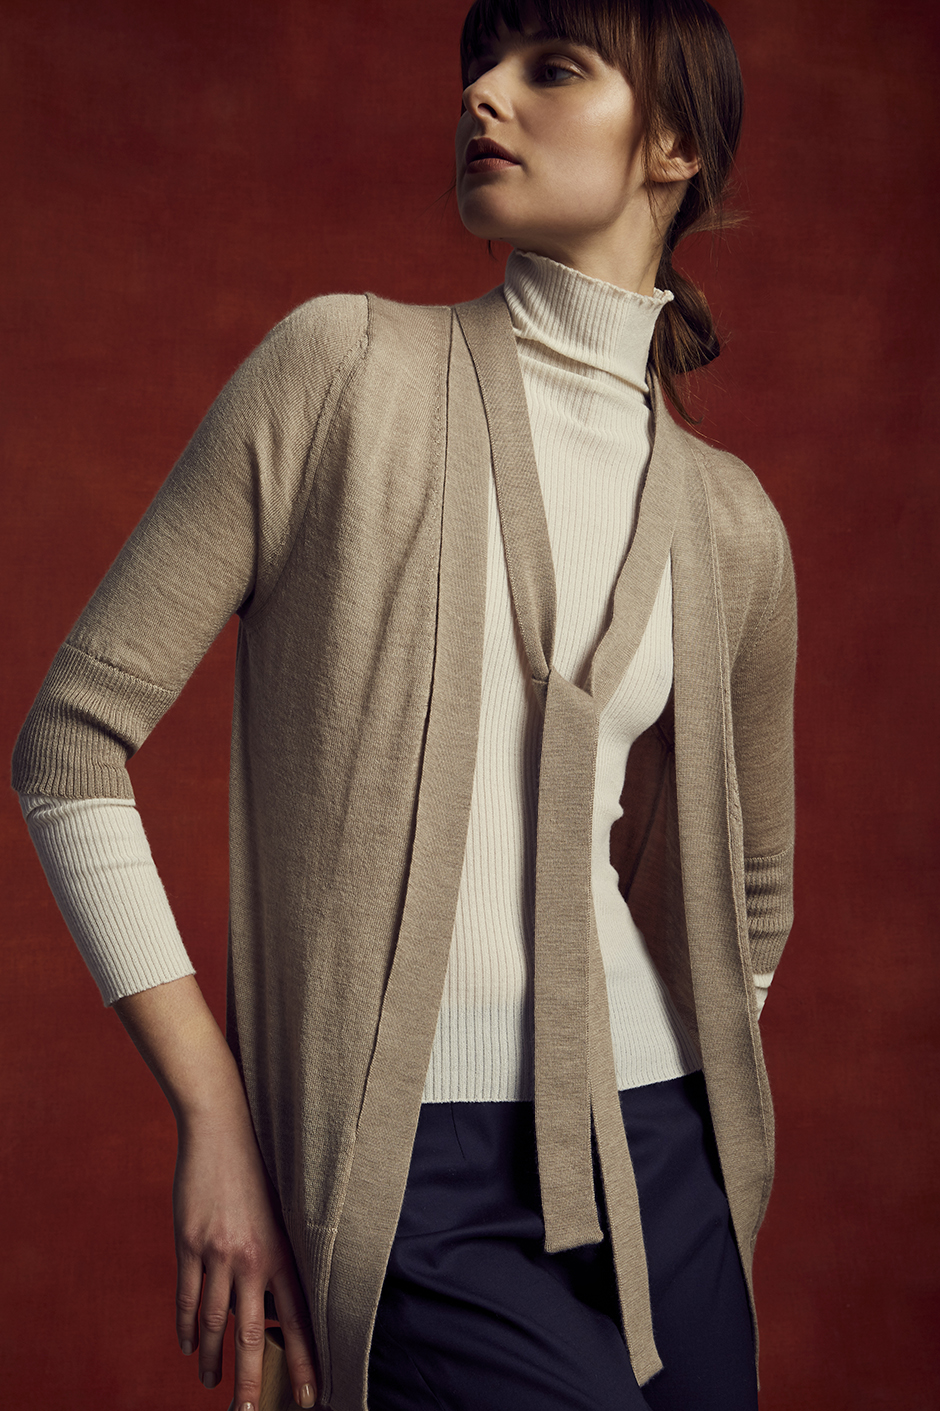 JORDAN CARDIGAN   70% CASHMERE 30% SILK      URBANA TURTLENECK   STRETCH CASHMERE      PIPPA PANT   STRETCH TASMANIAN SUPER 150'S WOOL      Contact for inquiry